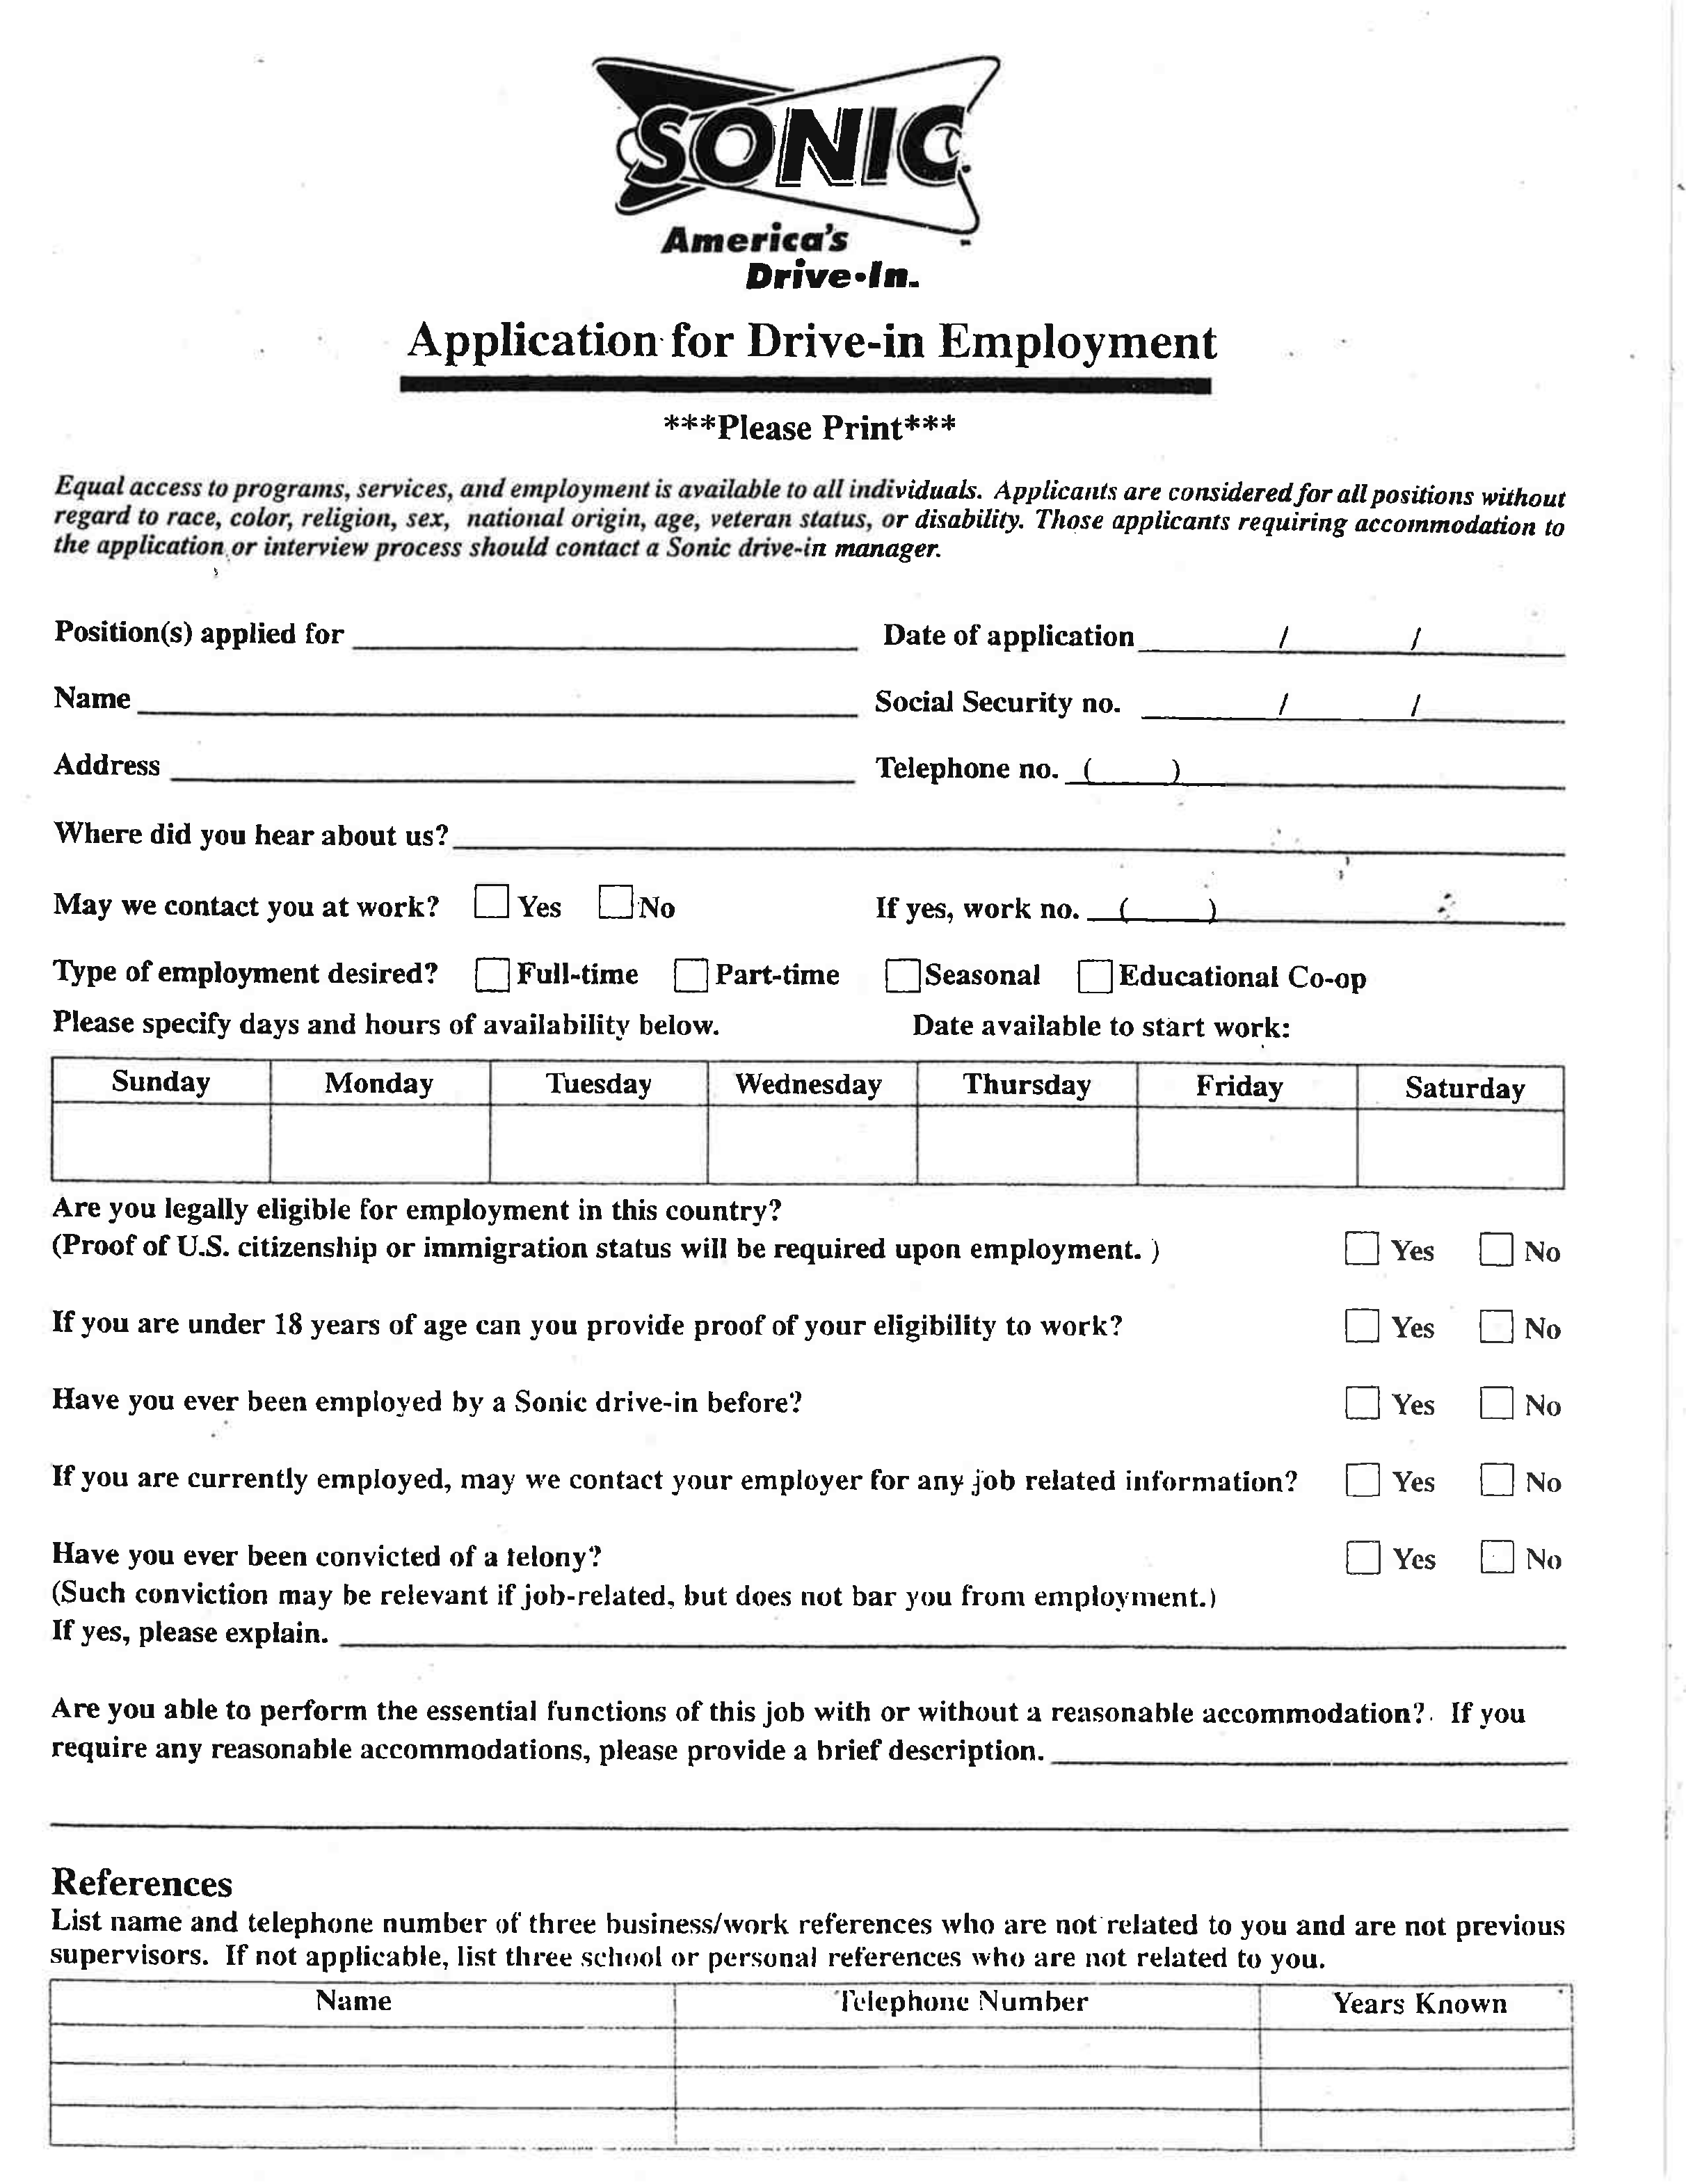 Sonic drive in job application form free download falaconquin